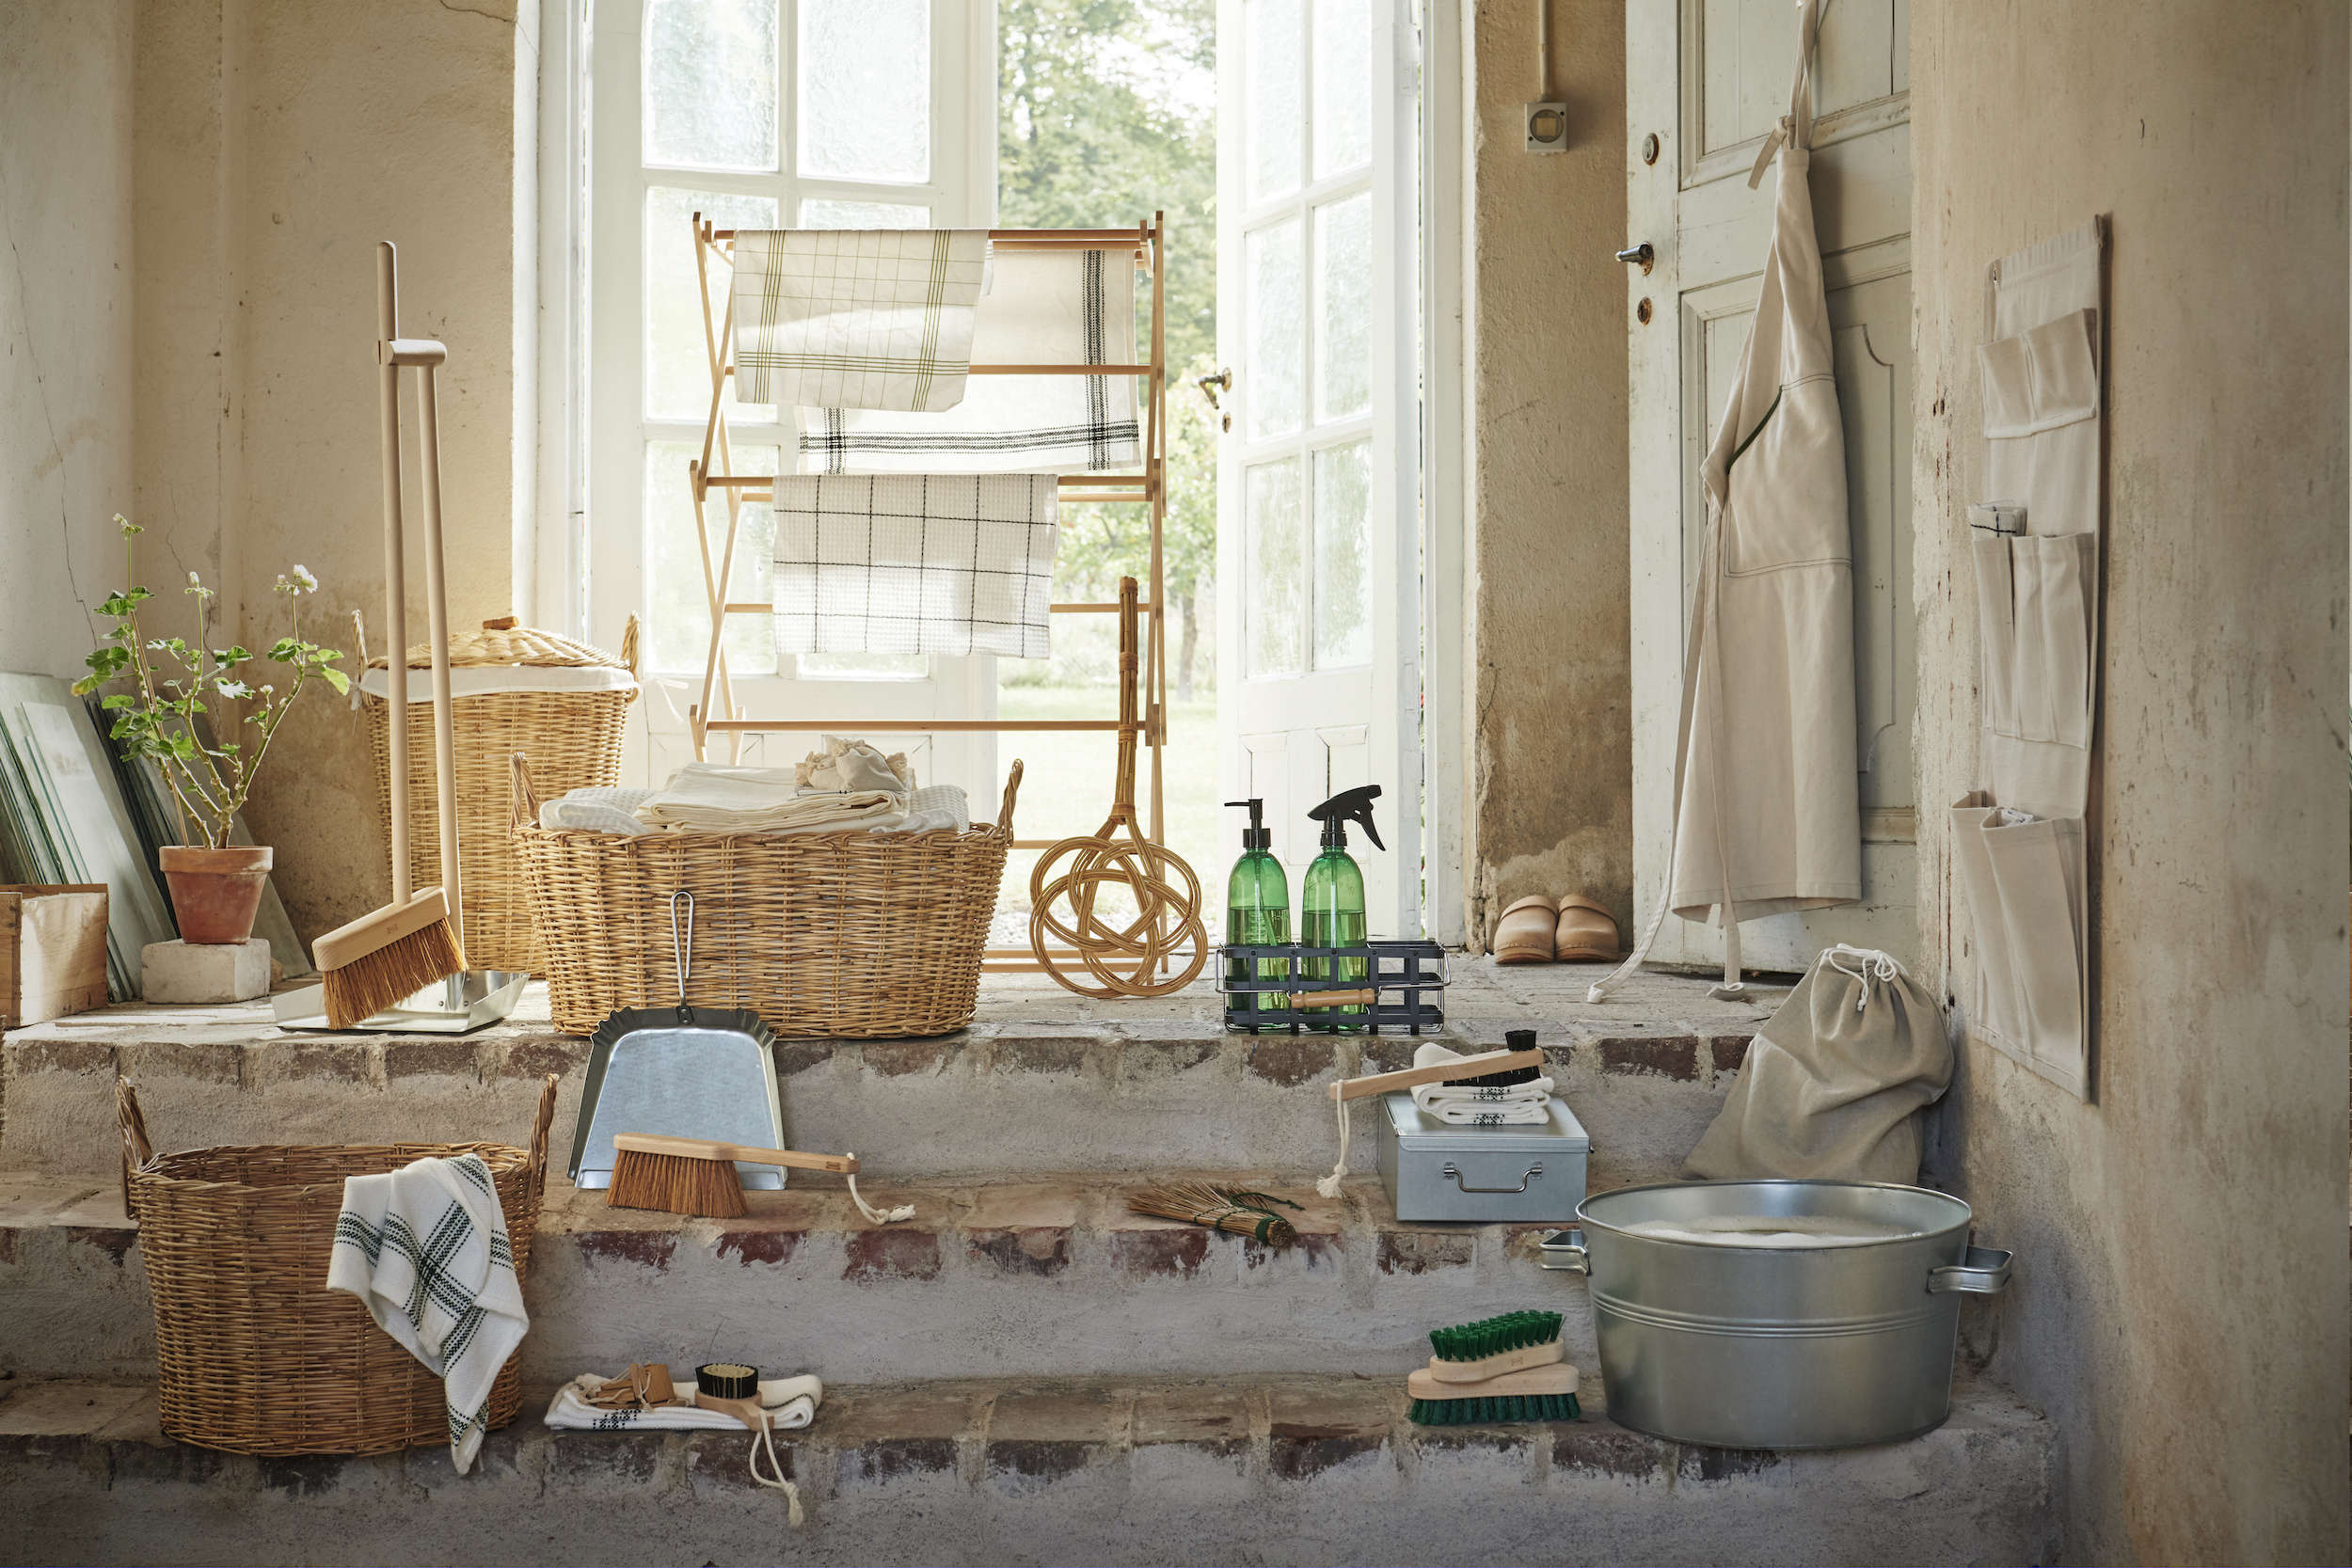 Domestic Science: A New Limited-Edition Collection of Household Wares from Ikea - Remodelista